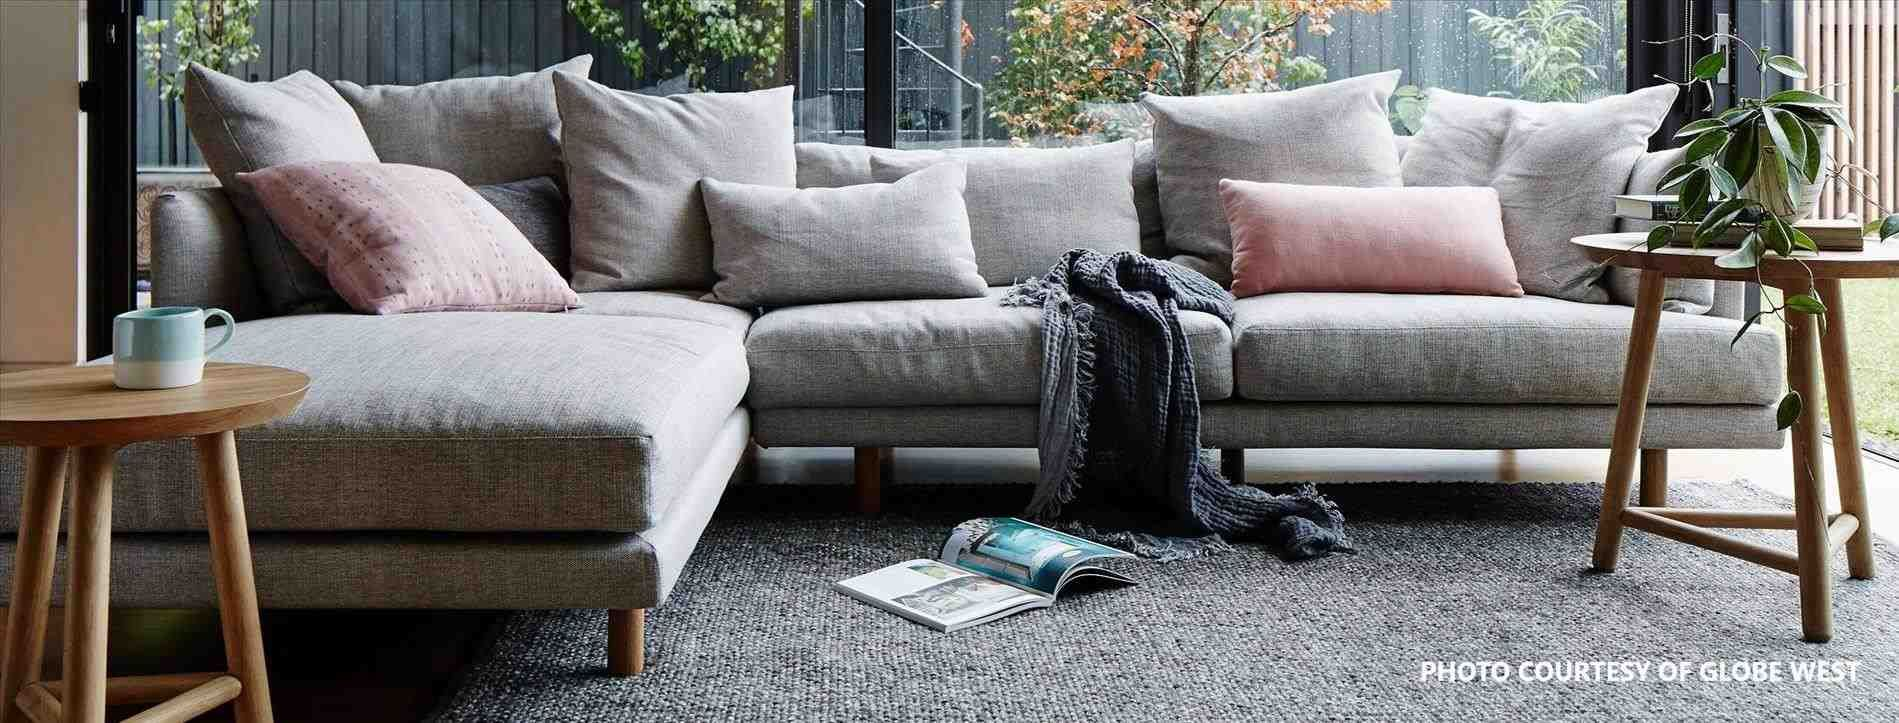 Buy furniture online brisbane used sofas for sale sa sas sofa gumtree sydney clearance dfs